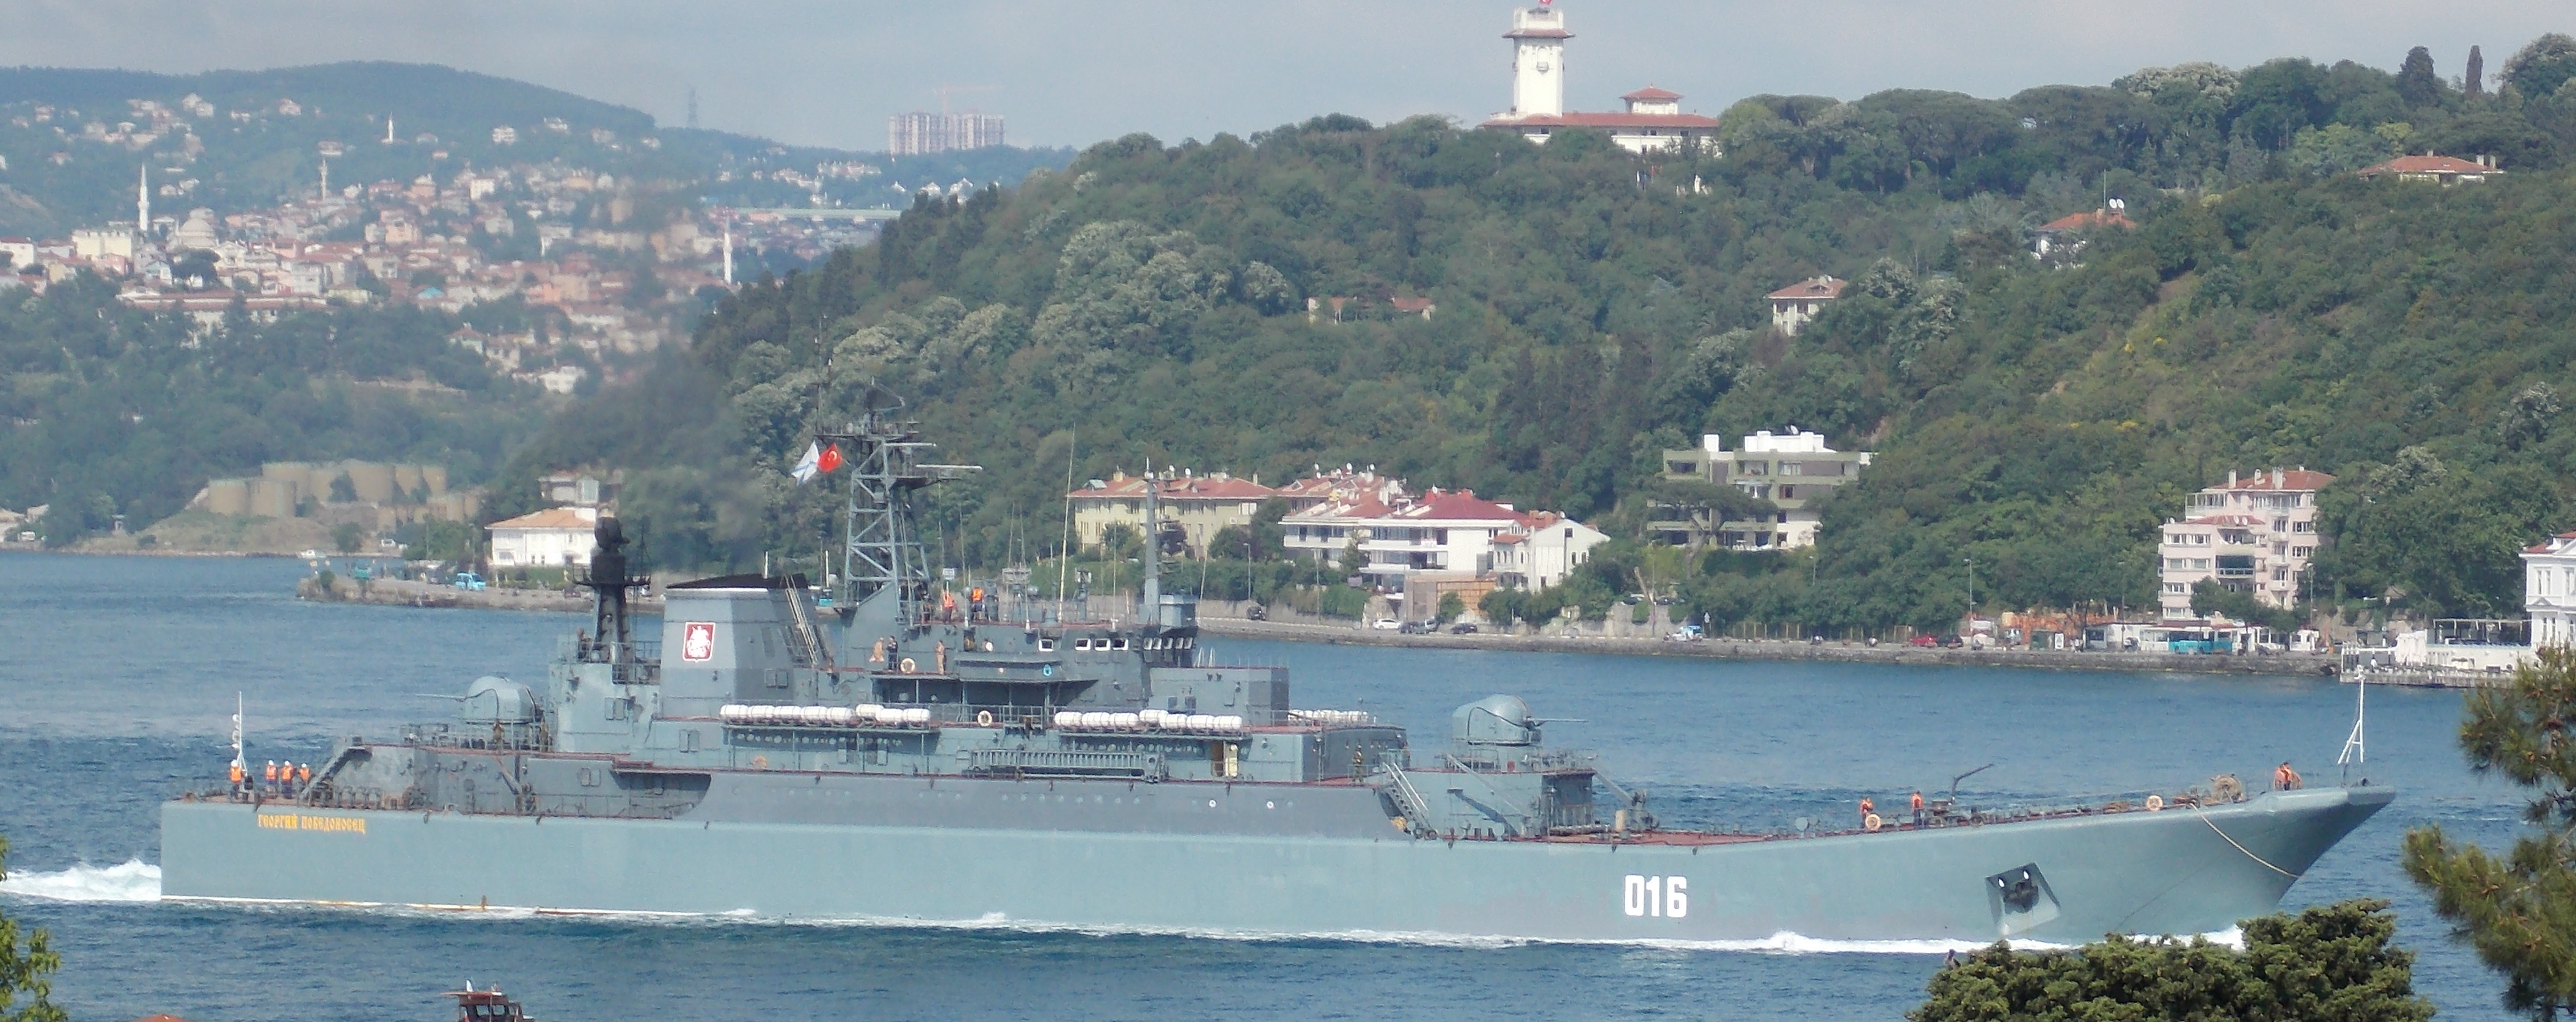 https://turkishnavy.files.wordpress.com/2014/06/dscn6045.jpg